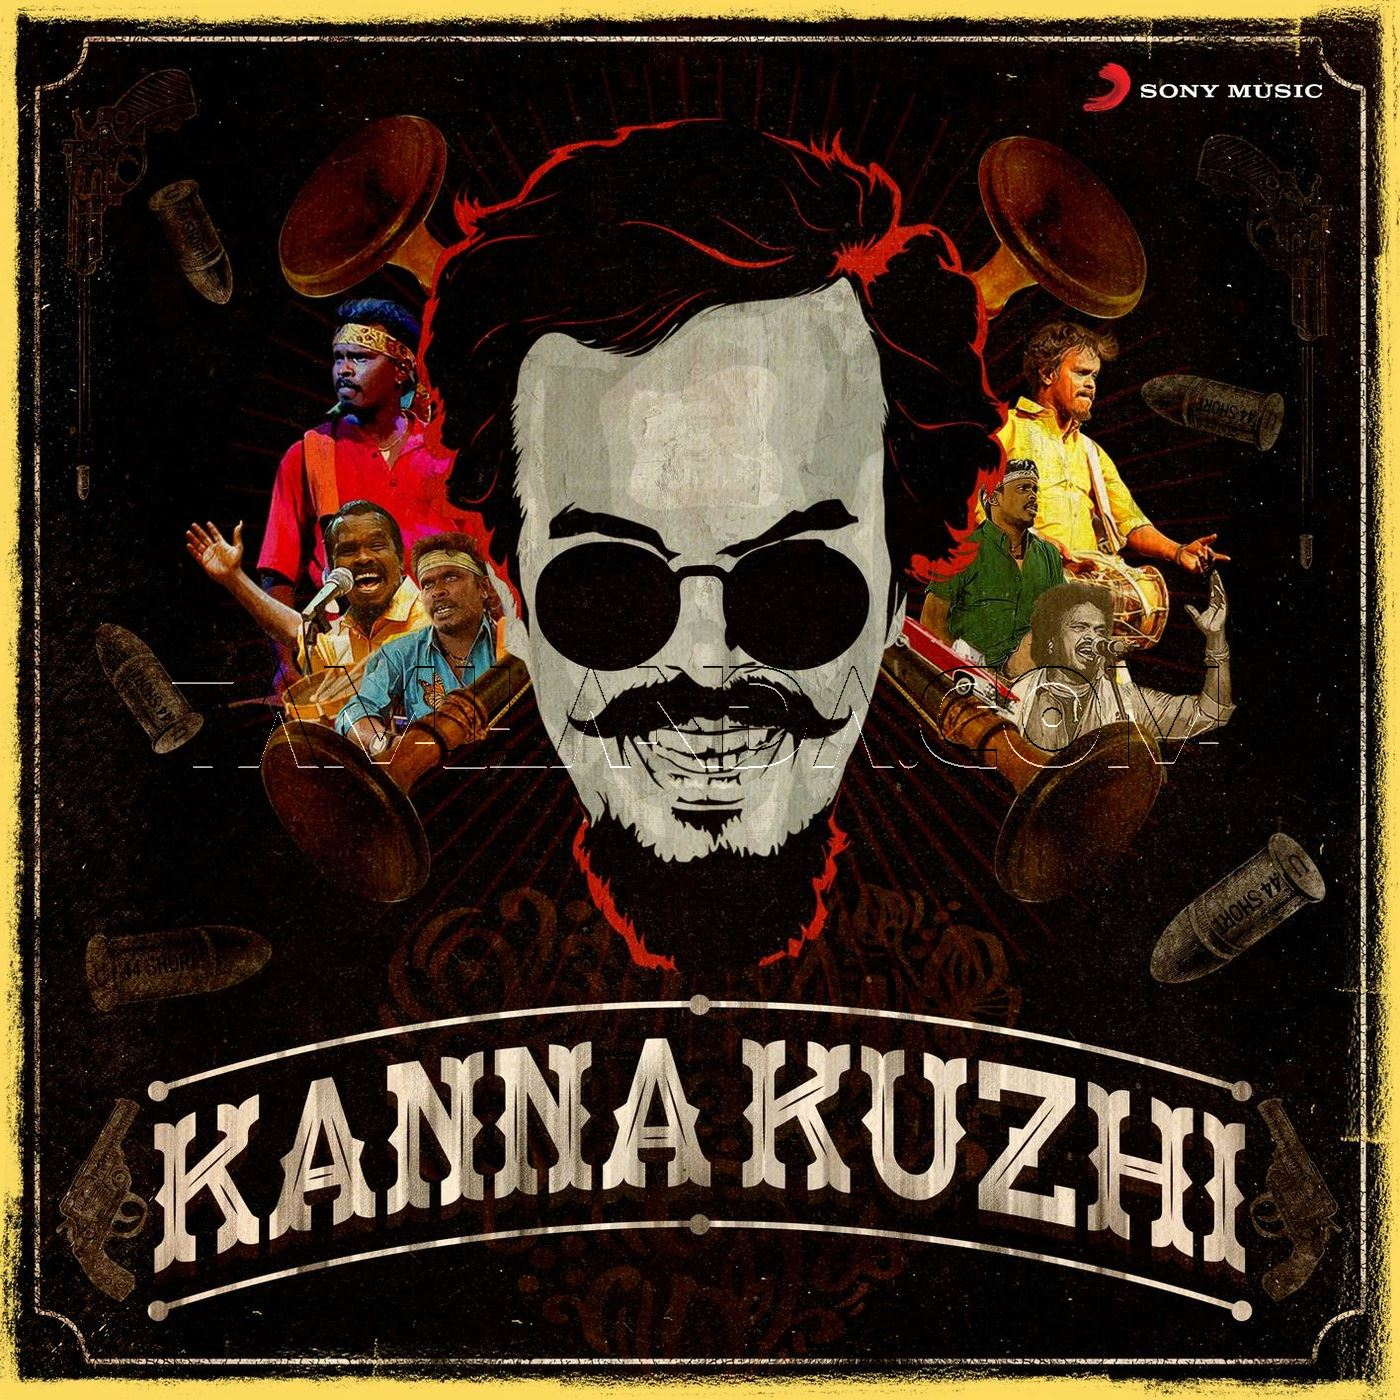 Kanna Kuzhi – Single FLAC Song (2019)